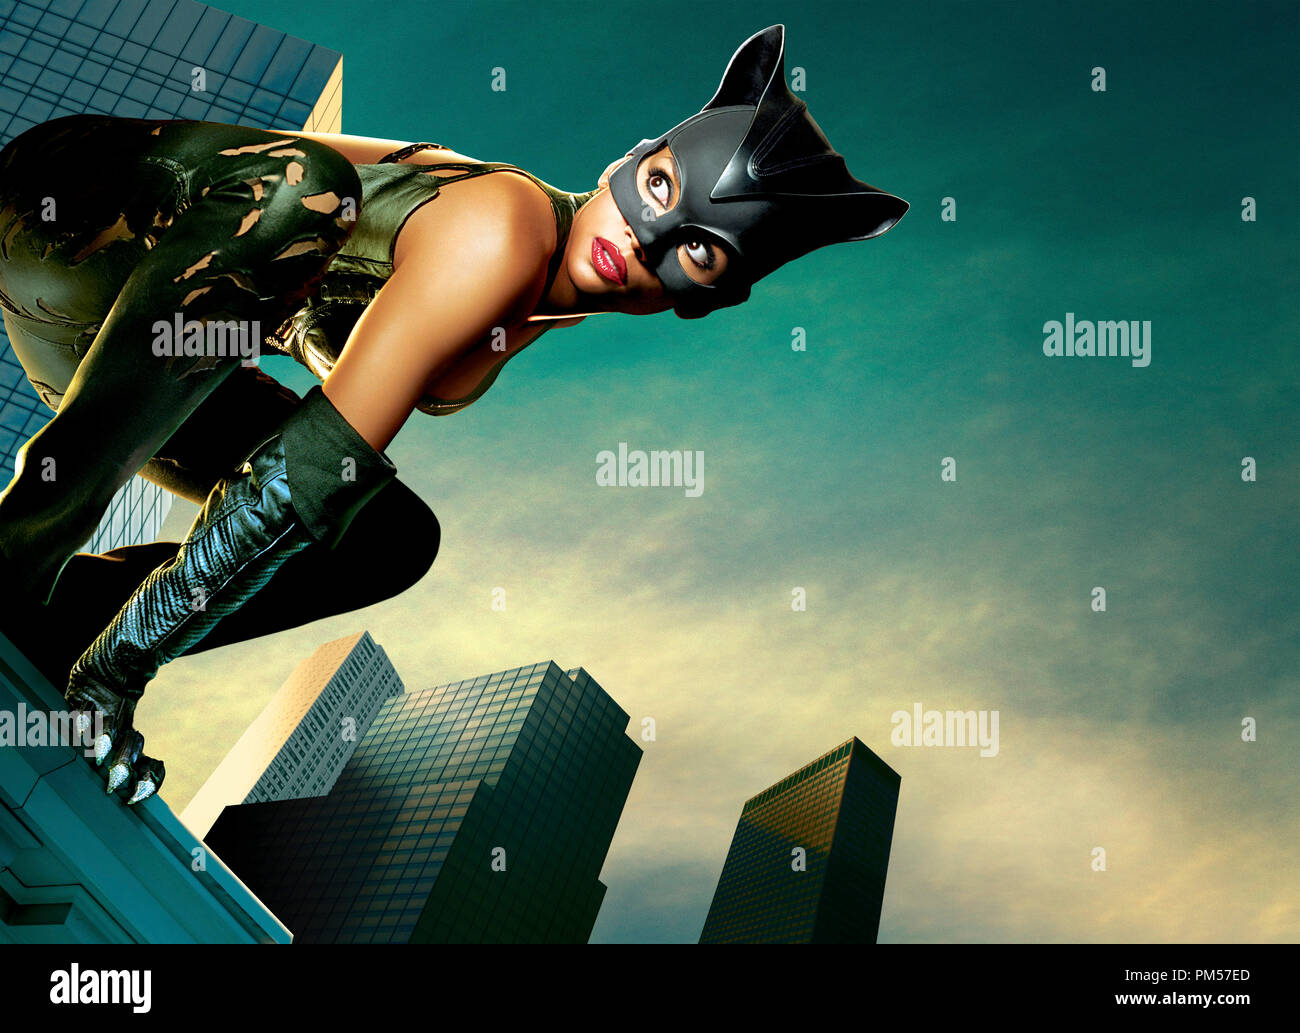 Studio Publicity Still from 'Catwoman' Halle Berry © 2004 Warner   File Reference # 307351748THA  For Editorial Use Only -  All Rights Reserved - Stock Image